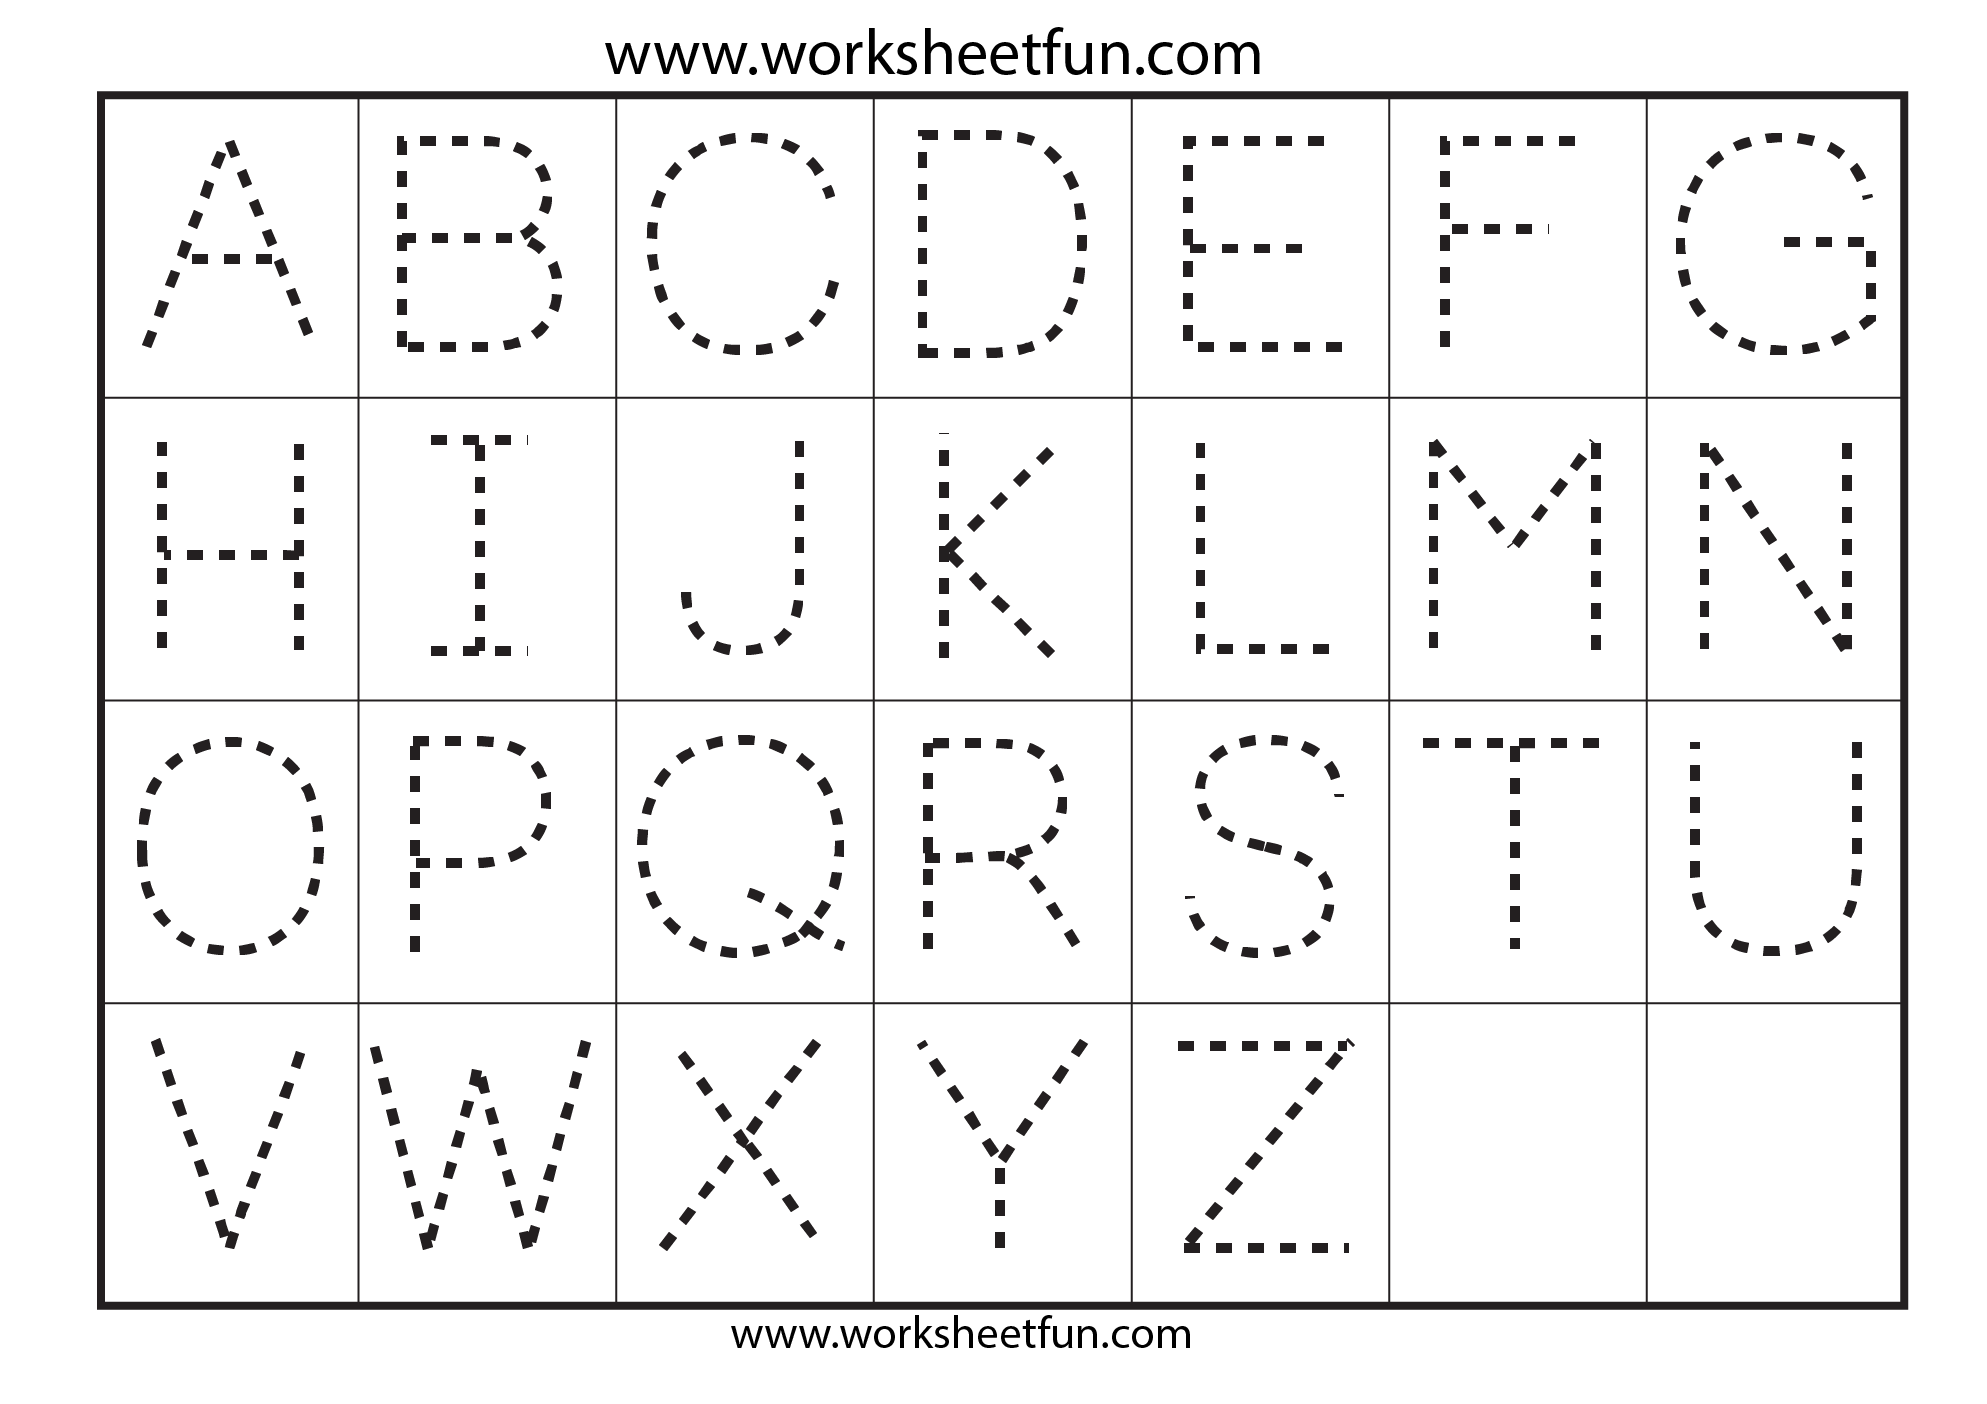 Worksheets Pre K Abc Worksheets www printablee compostpic201103preschool works